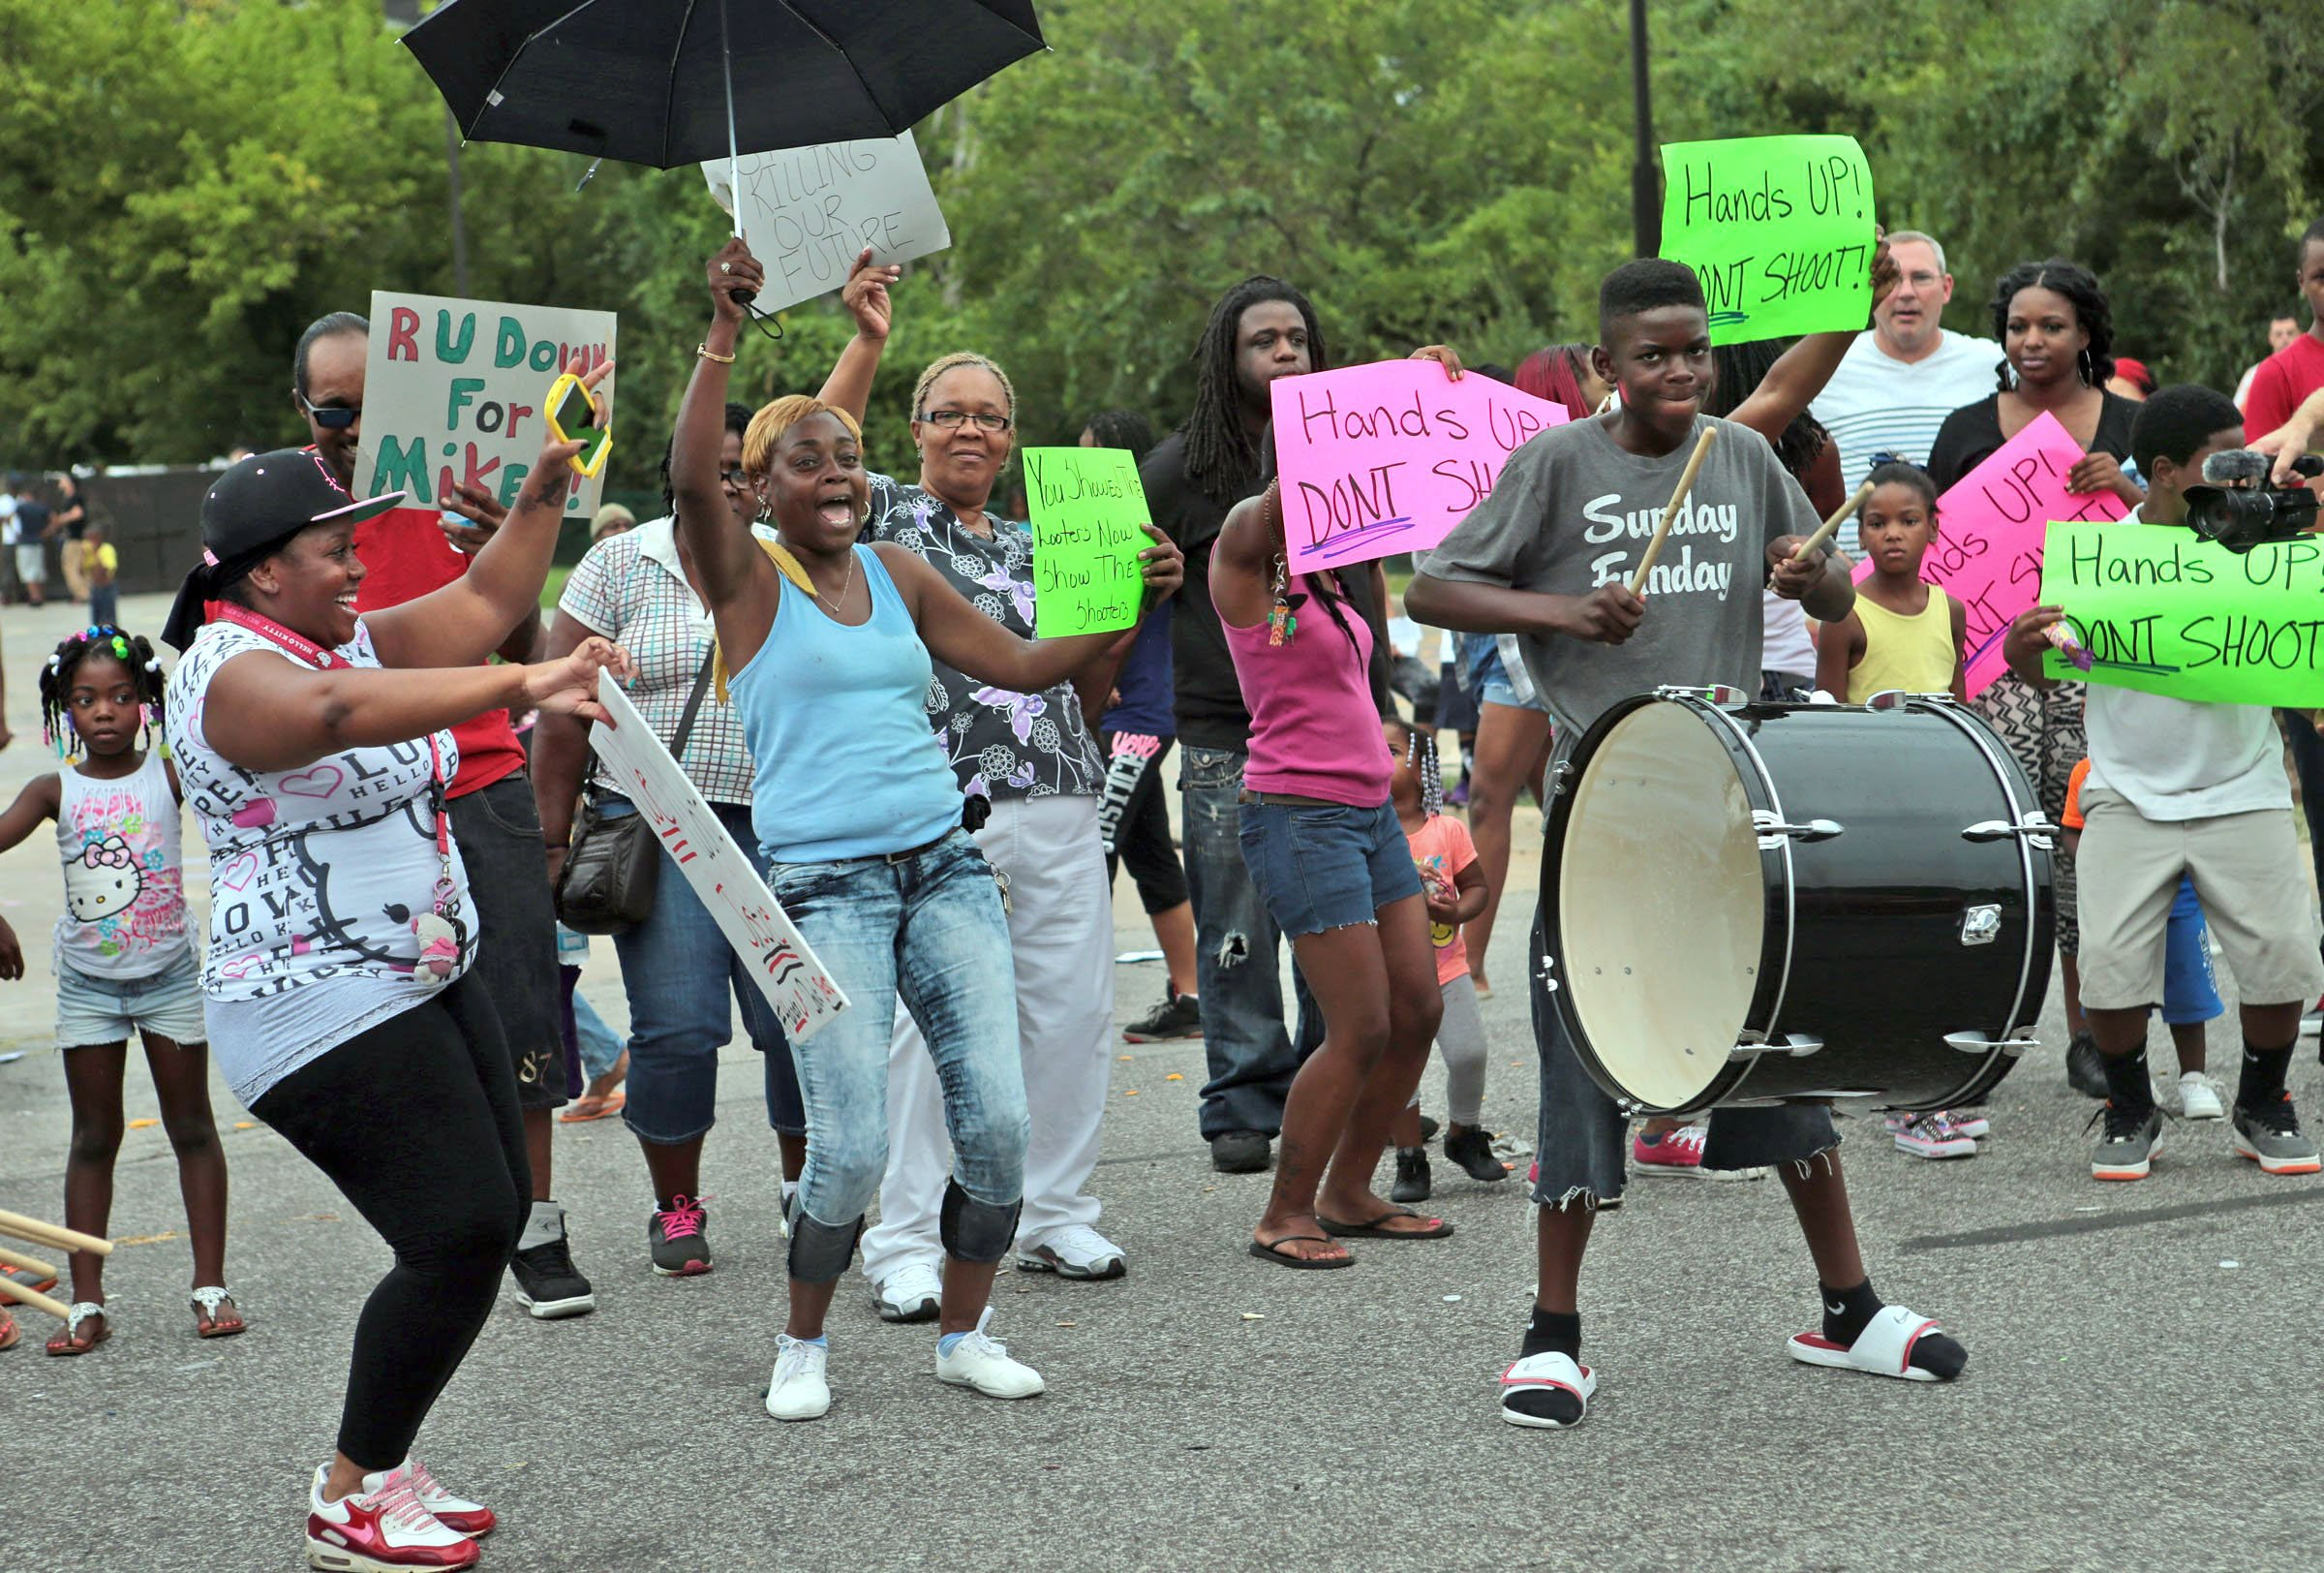 """""""I am loving the unity out here,"""" said Kim Harris (center) who dances to the drumming of Avery Gales, 13, with protestor Jasmine Davis (left) on Friday, Aug. 15, 2014, in the parking lot of the burned QuikTrip.  Photo by Laurie Skrivan, lskrivan@post-dispatch.com"""